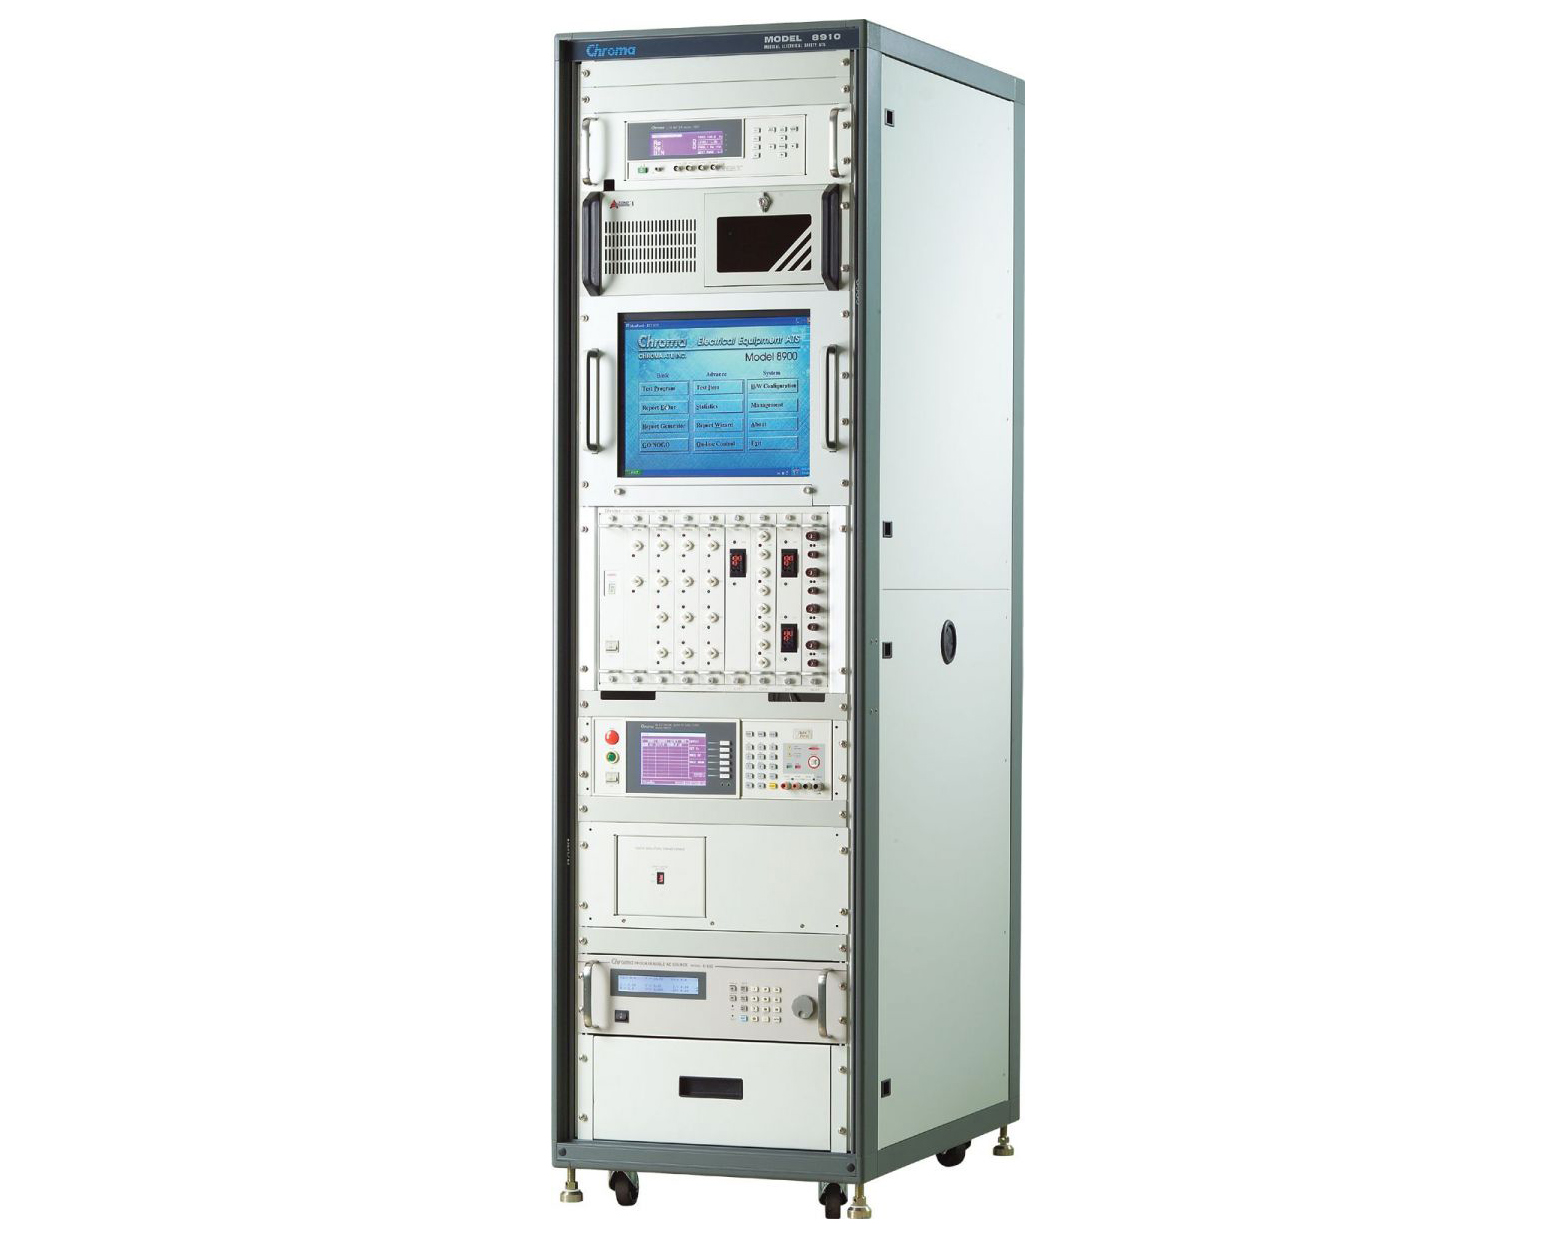 Chroma 8900 Electrical Equipment Automatic Test System